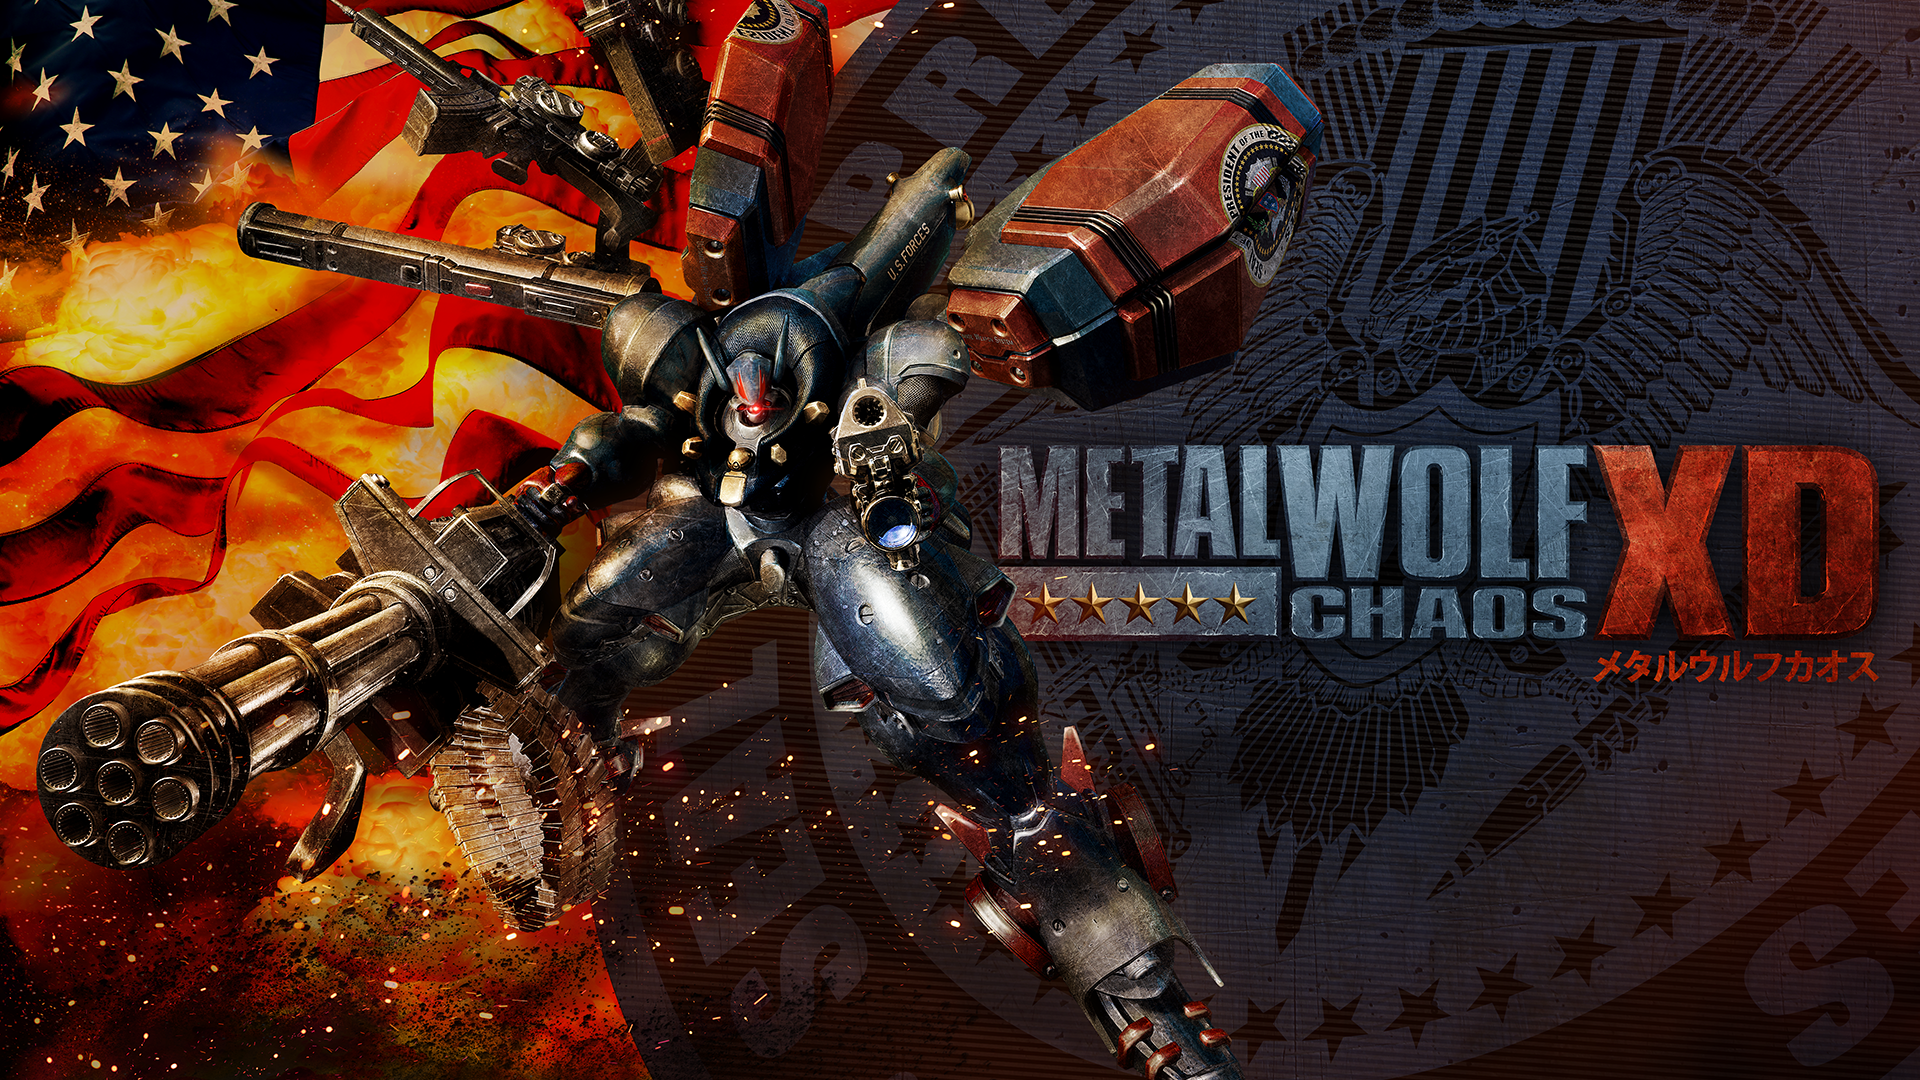 In Metal Wolf Chaos XD, the POTUS travels around the U.S. in Air Force One and fights off a villainous coup by the Vice President in an effort to restore democracy to the United States. (Photo courtesy Devolver Digital via cosmocover.com)